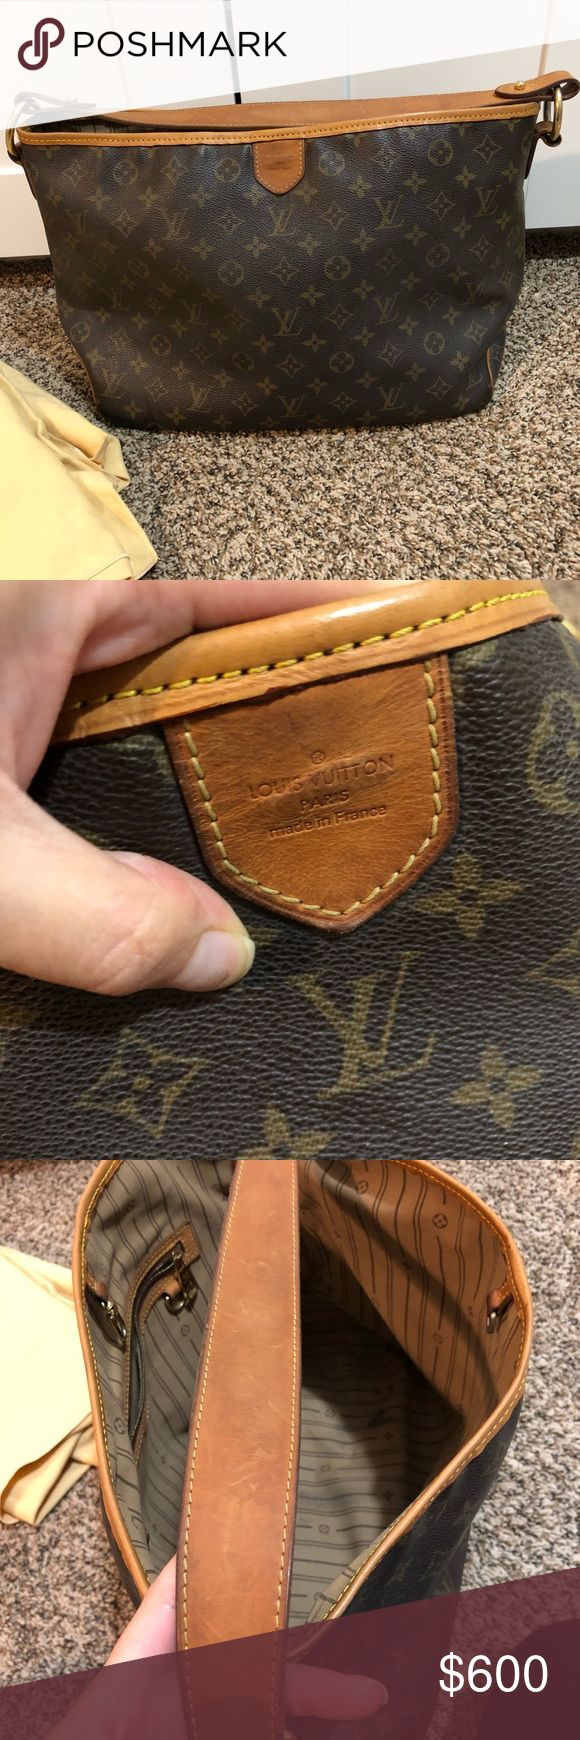 LV Delightful PM No cracks or tears comes with dust bag. There is stain inside and pocket Louis Vuitton Bags Totes